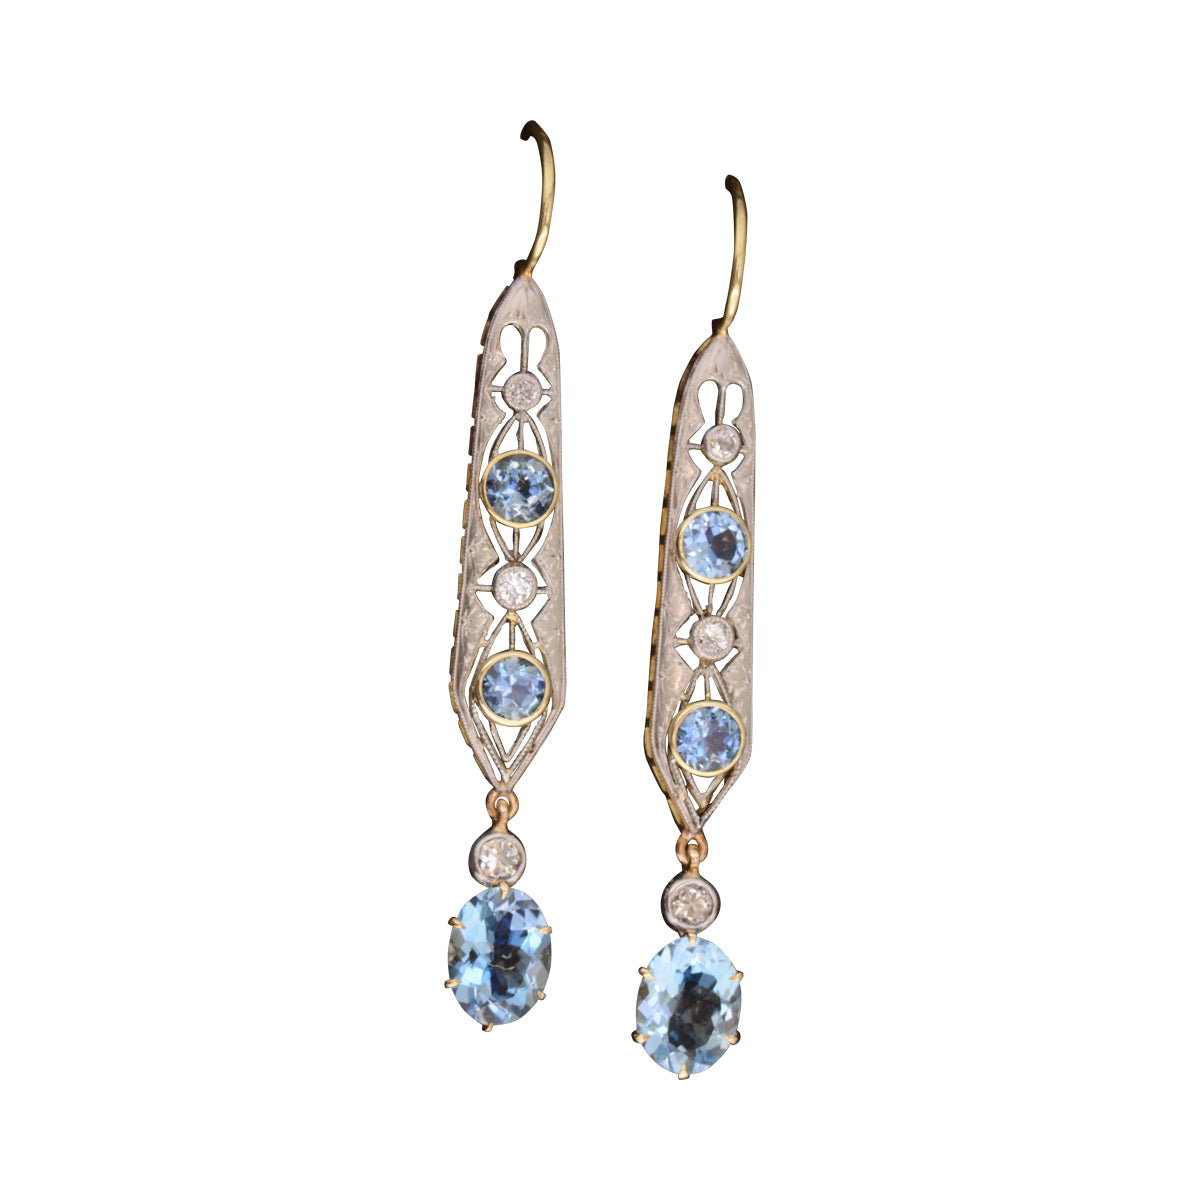 Edwardian Aquamarine Drop Earrings